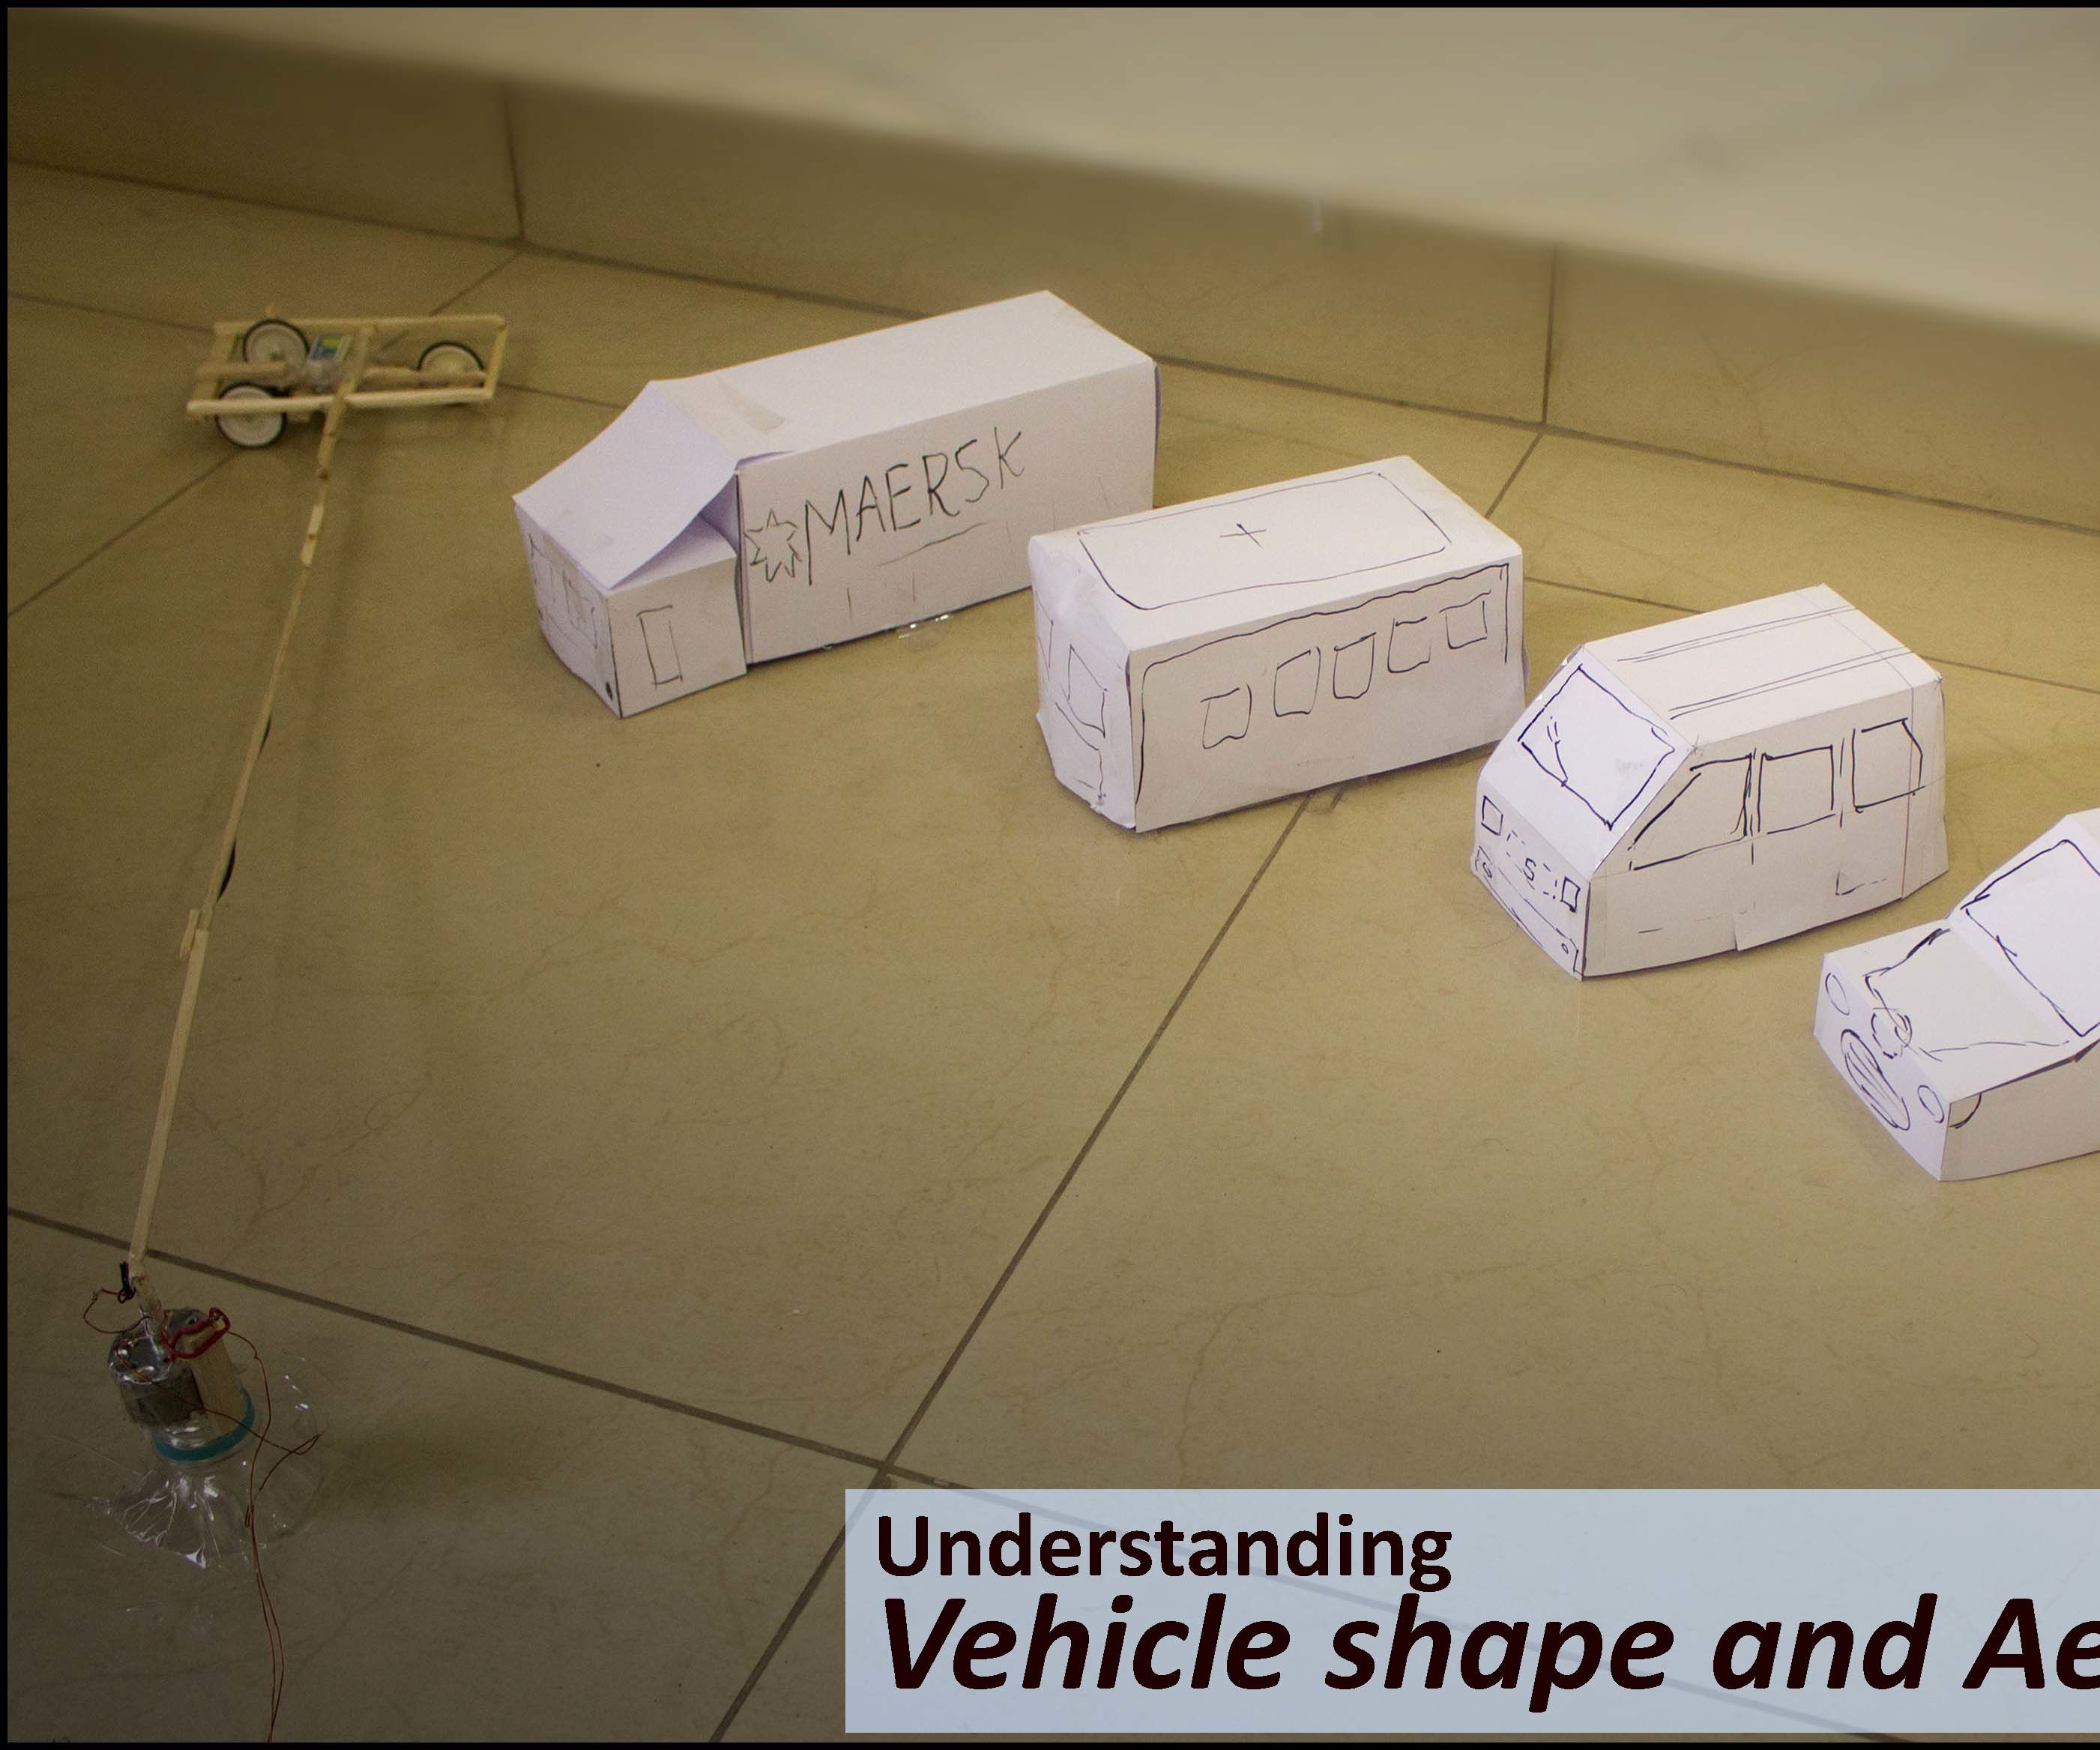 Making Various Paper Shapes Automotive Vehicle and Measuring Drag of It